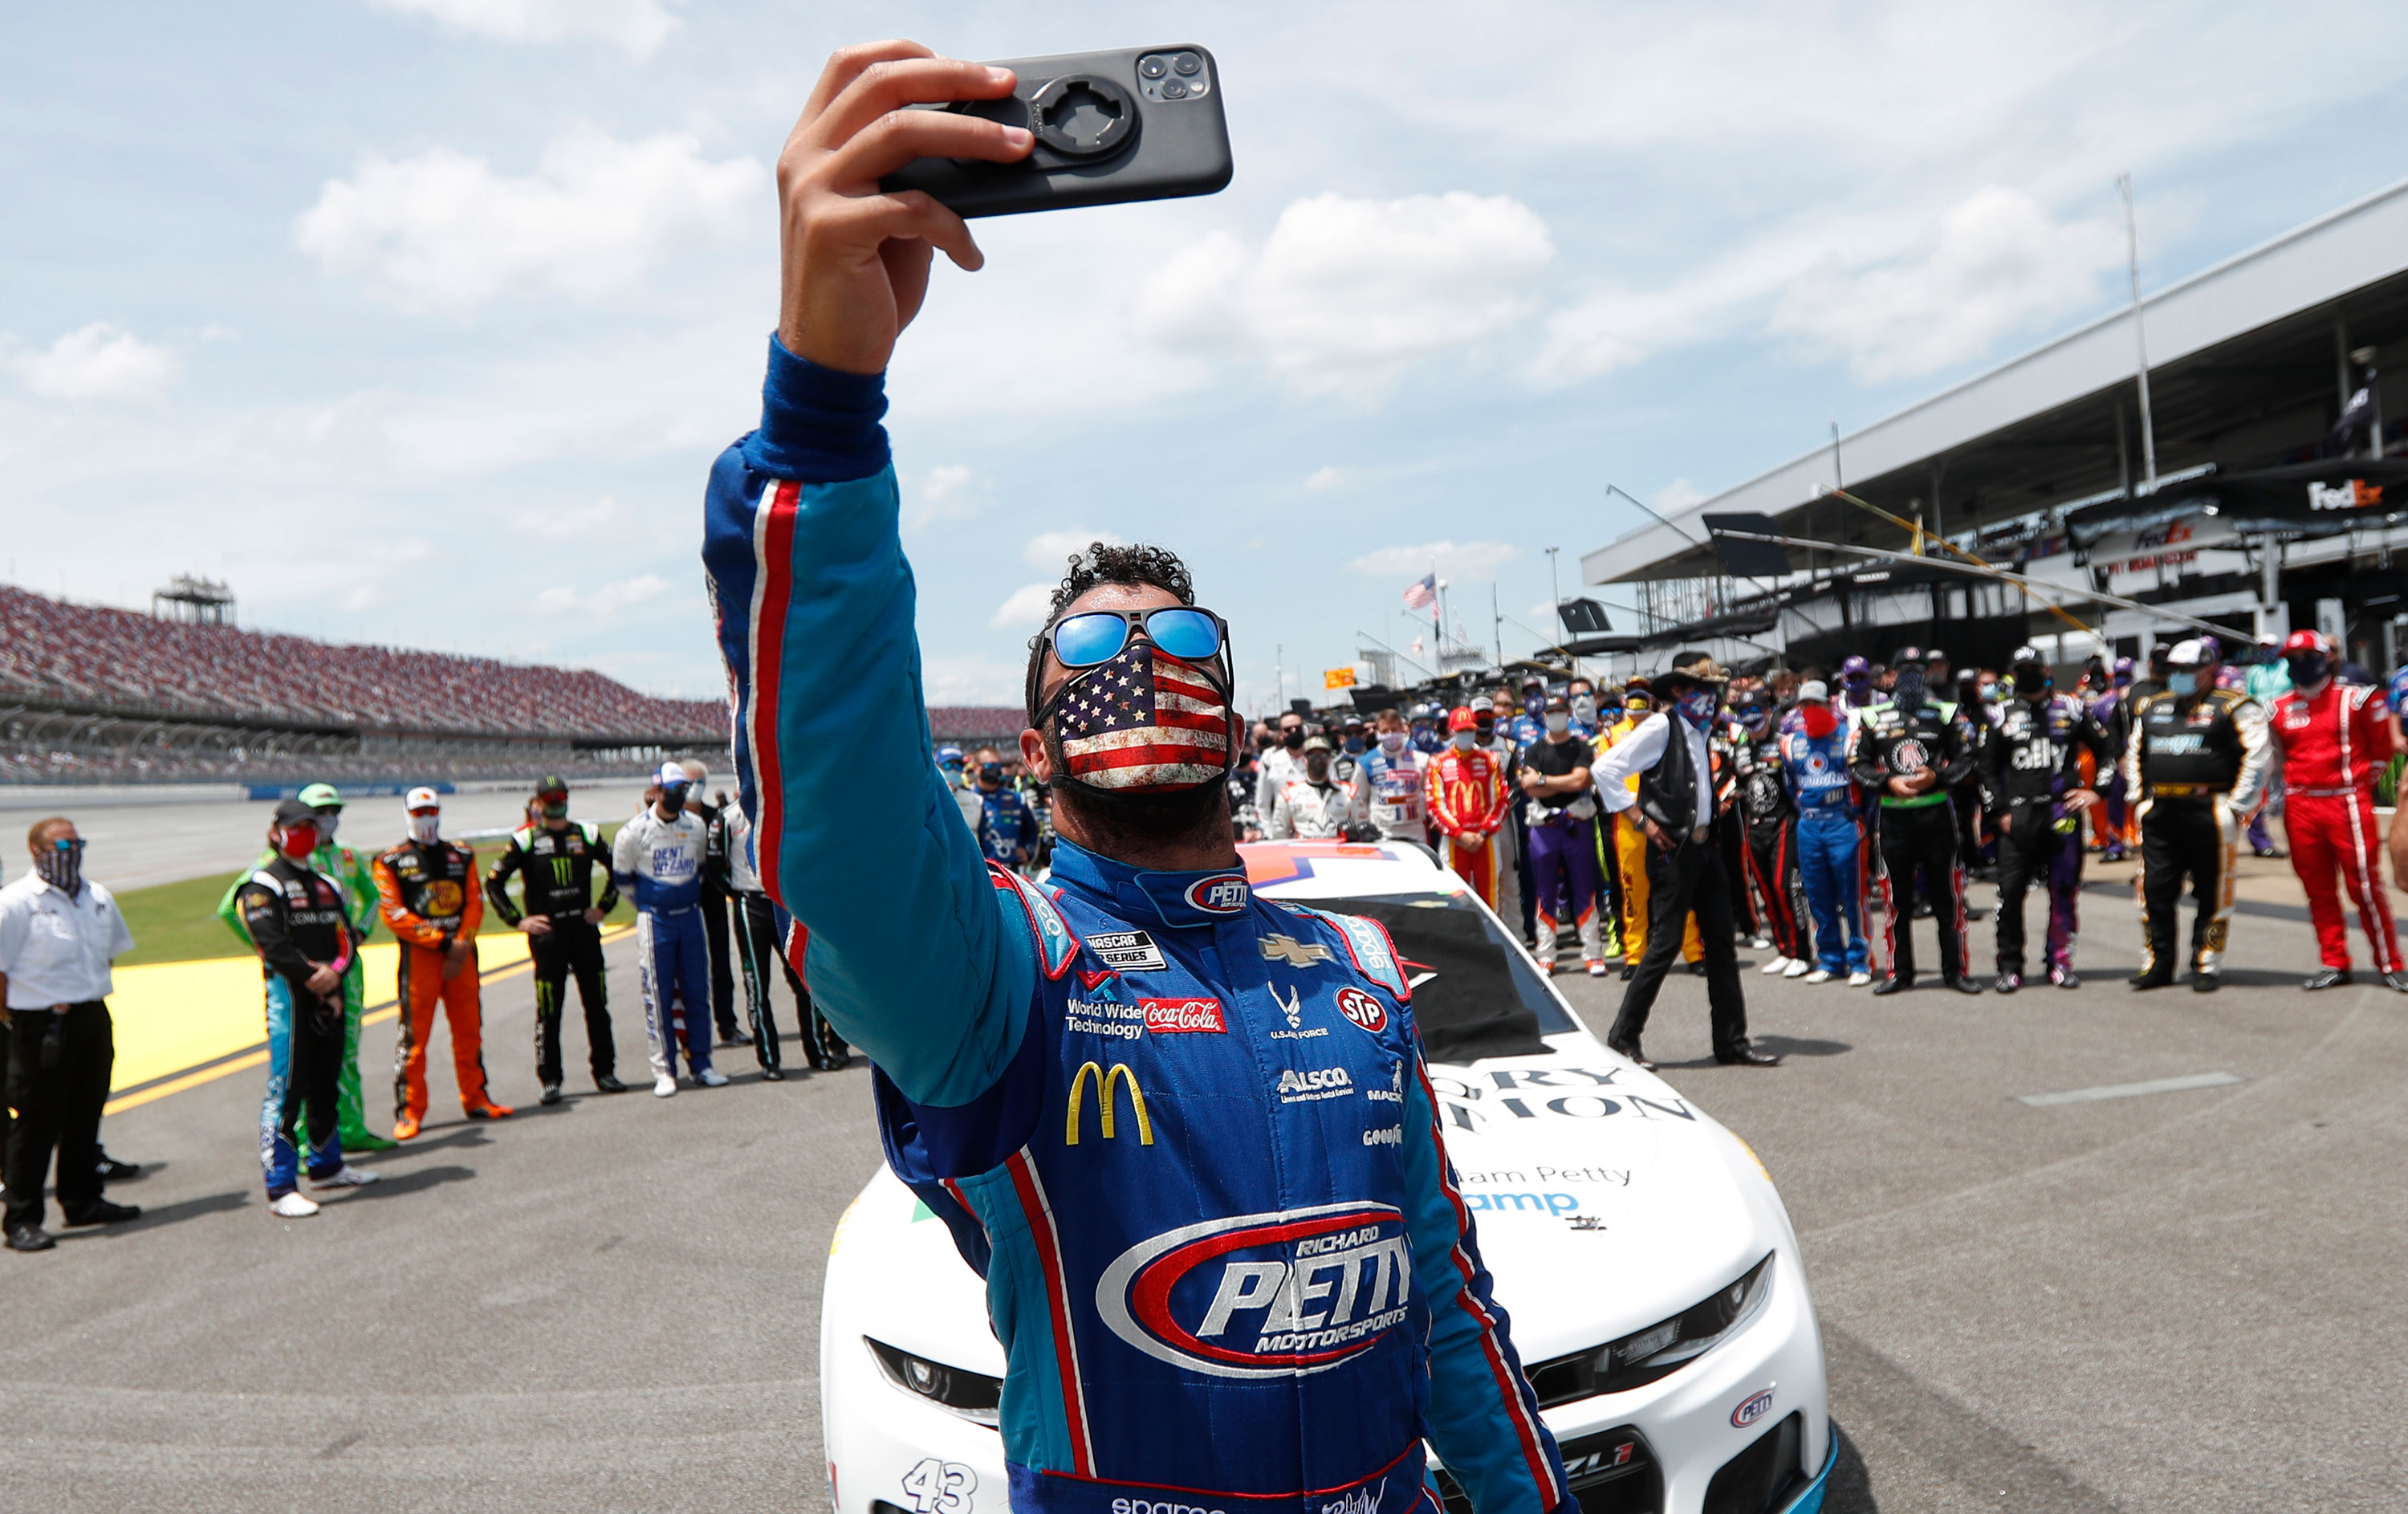 Bubba Wallace takes a selfie of himself and other drivers that pushed his car to the front in the pits of the Talladega Superspeedway prior to the start of the NASCAR Cup Series race on June 22 in Talladega, Alabama.